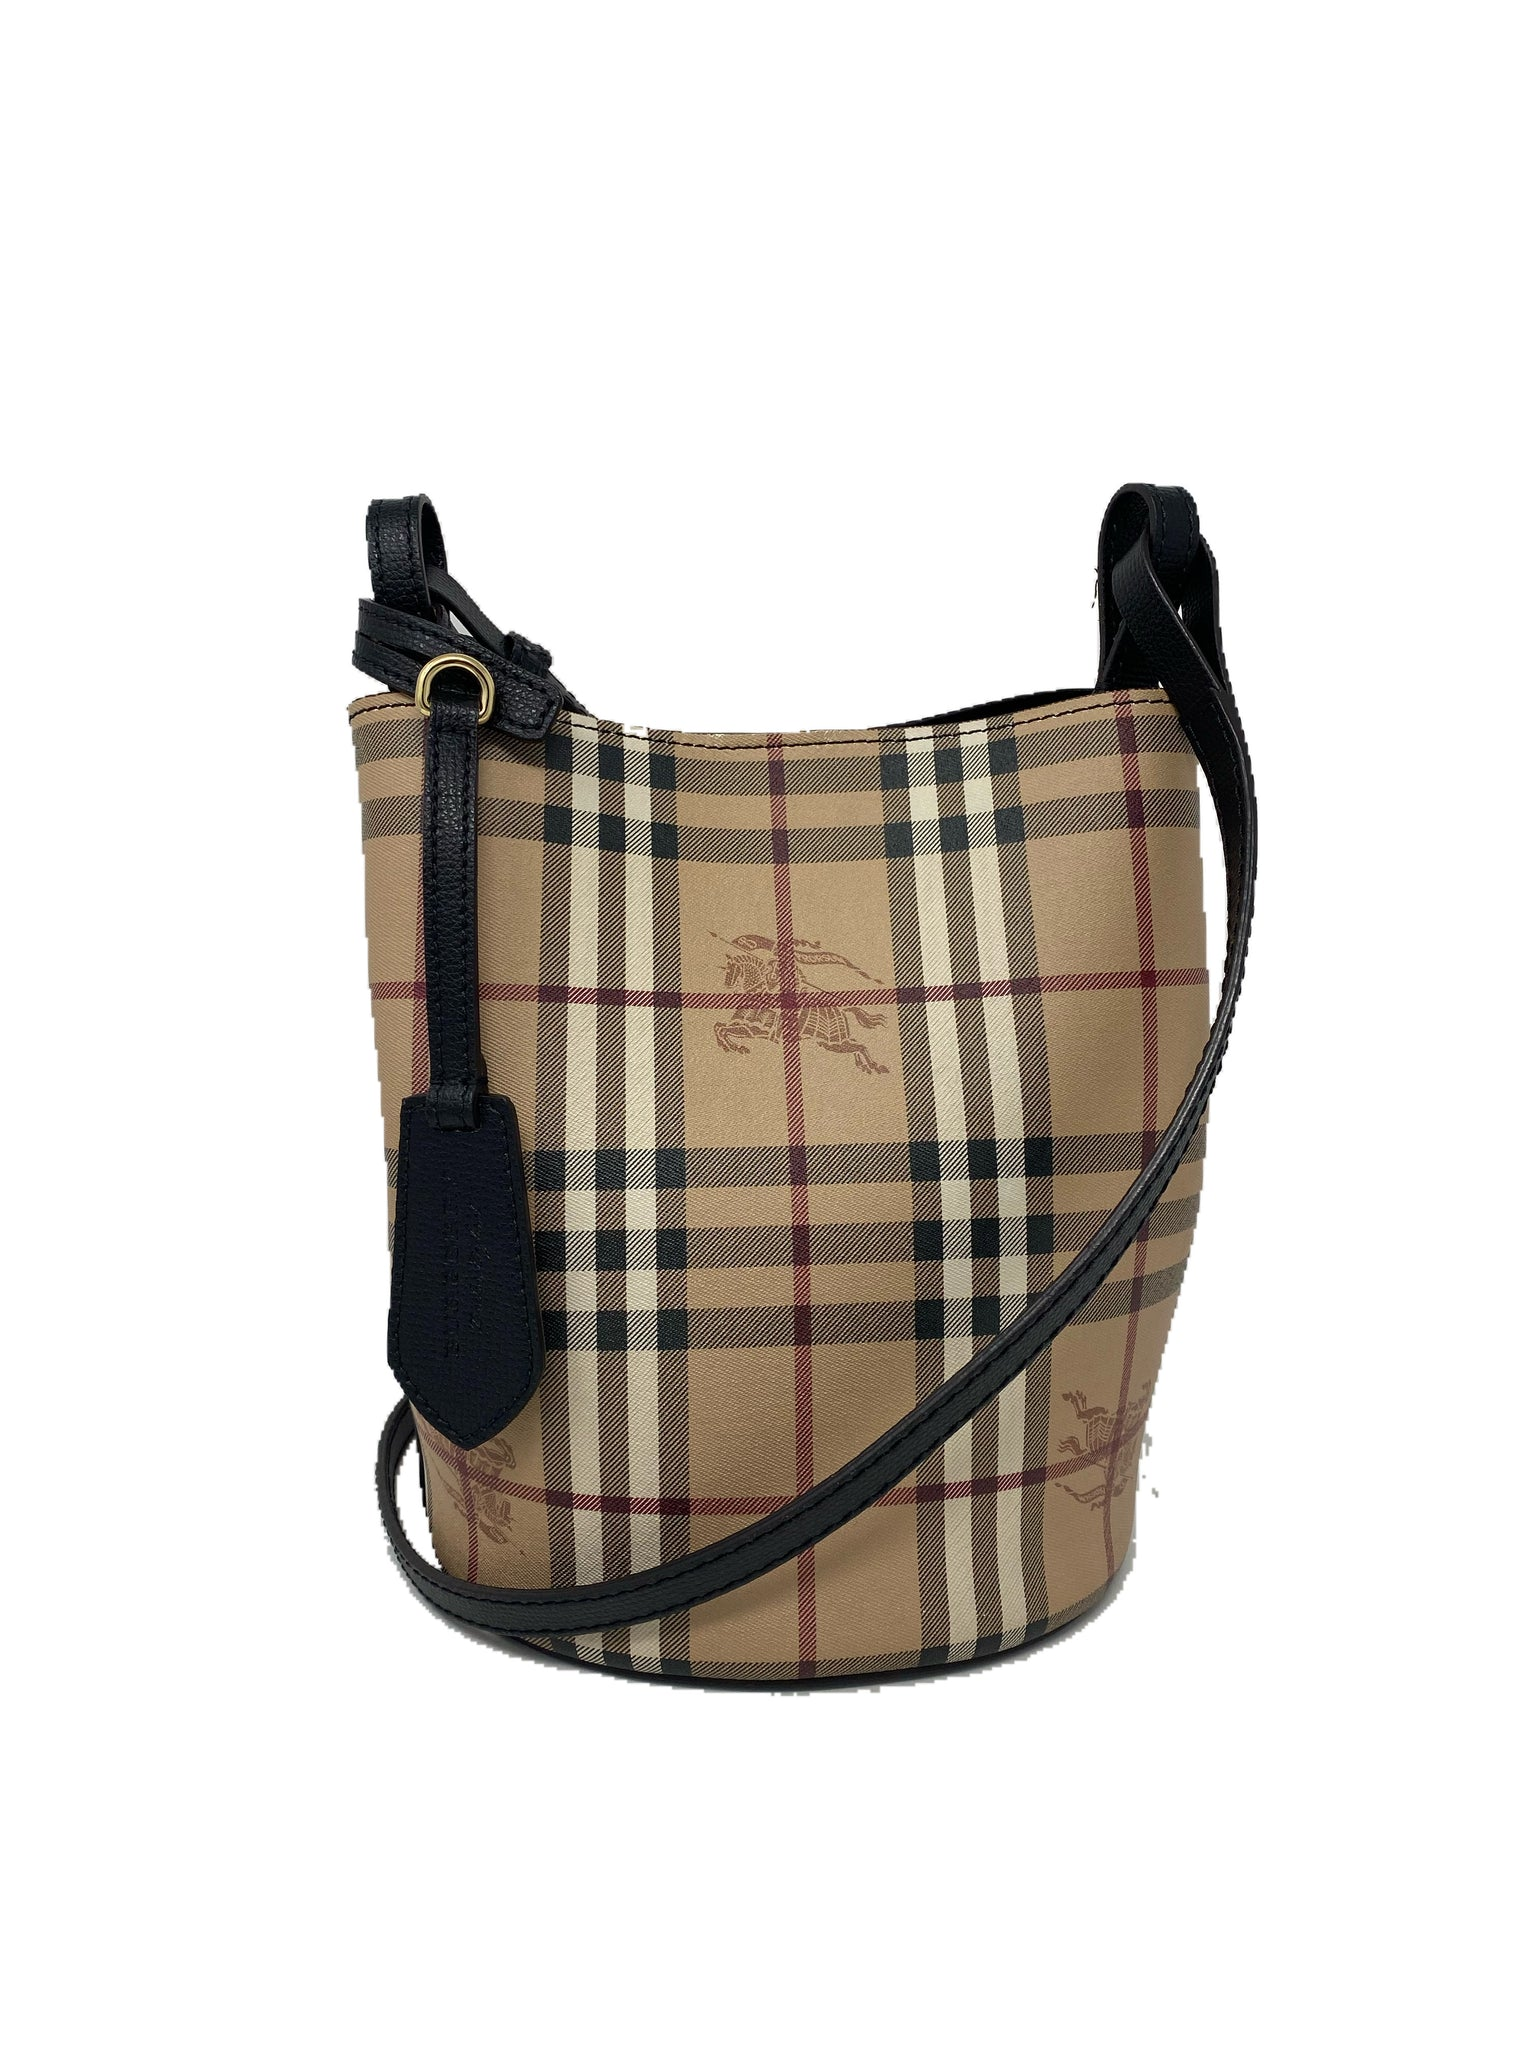 Burberry Leather and Haymarket Check Crossbody Bucket Bag Black